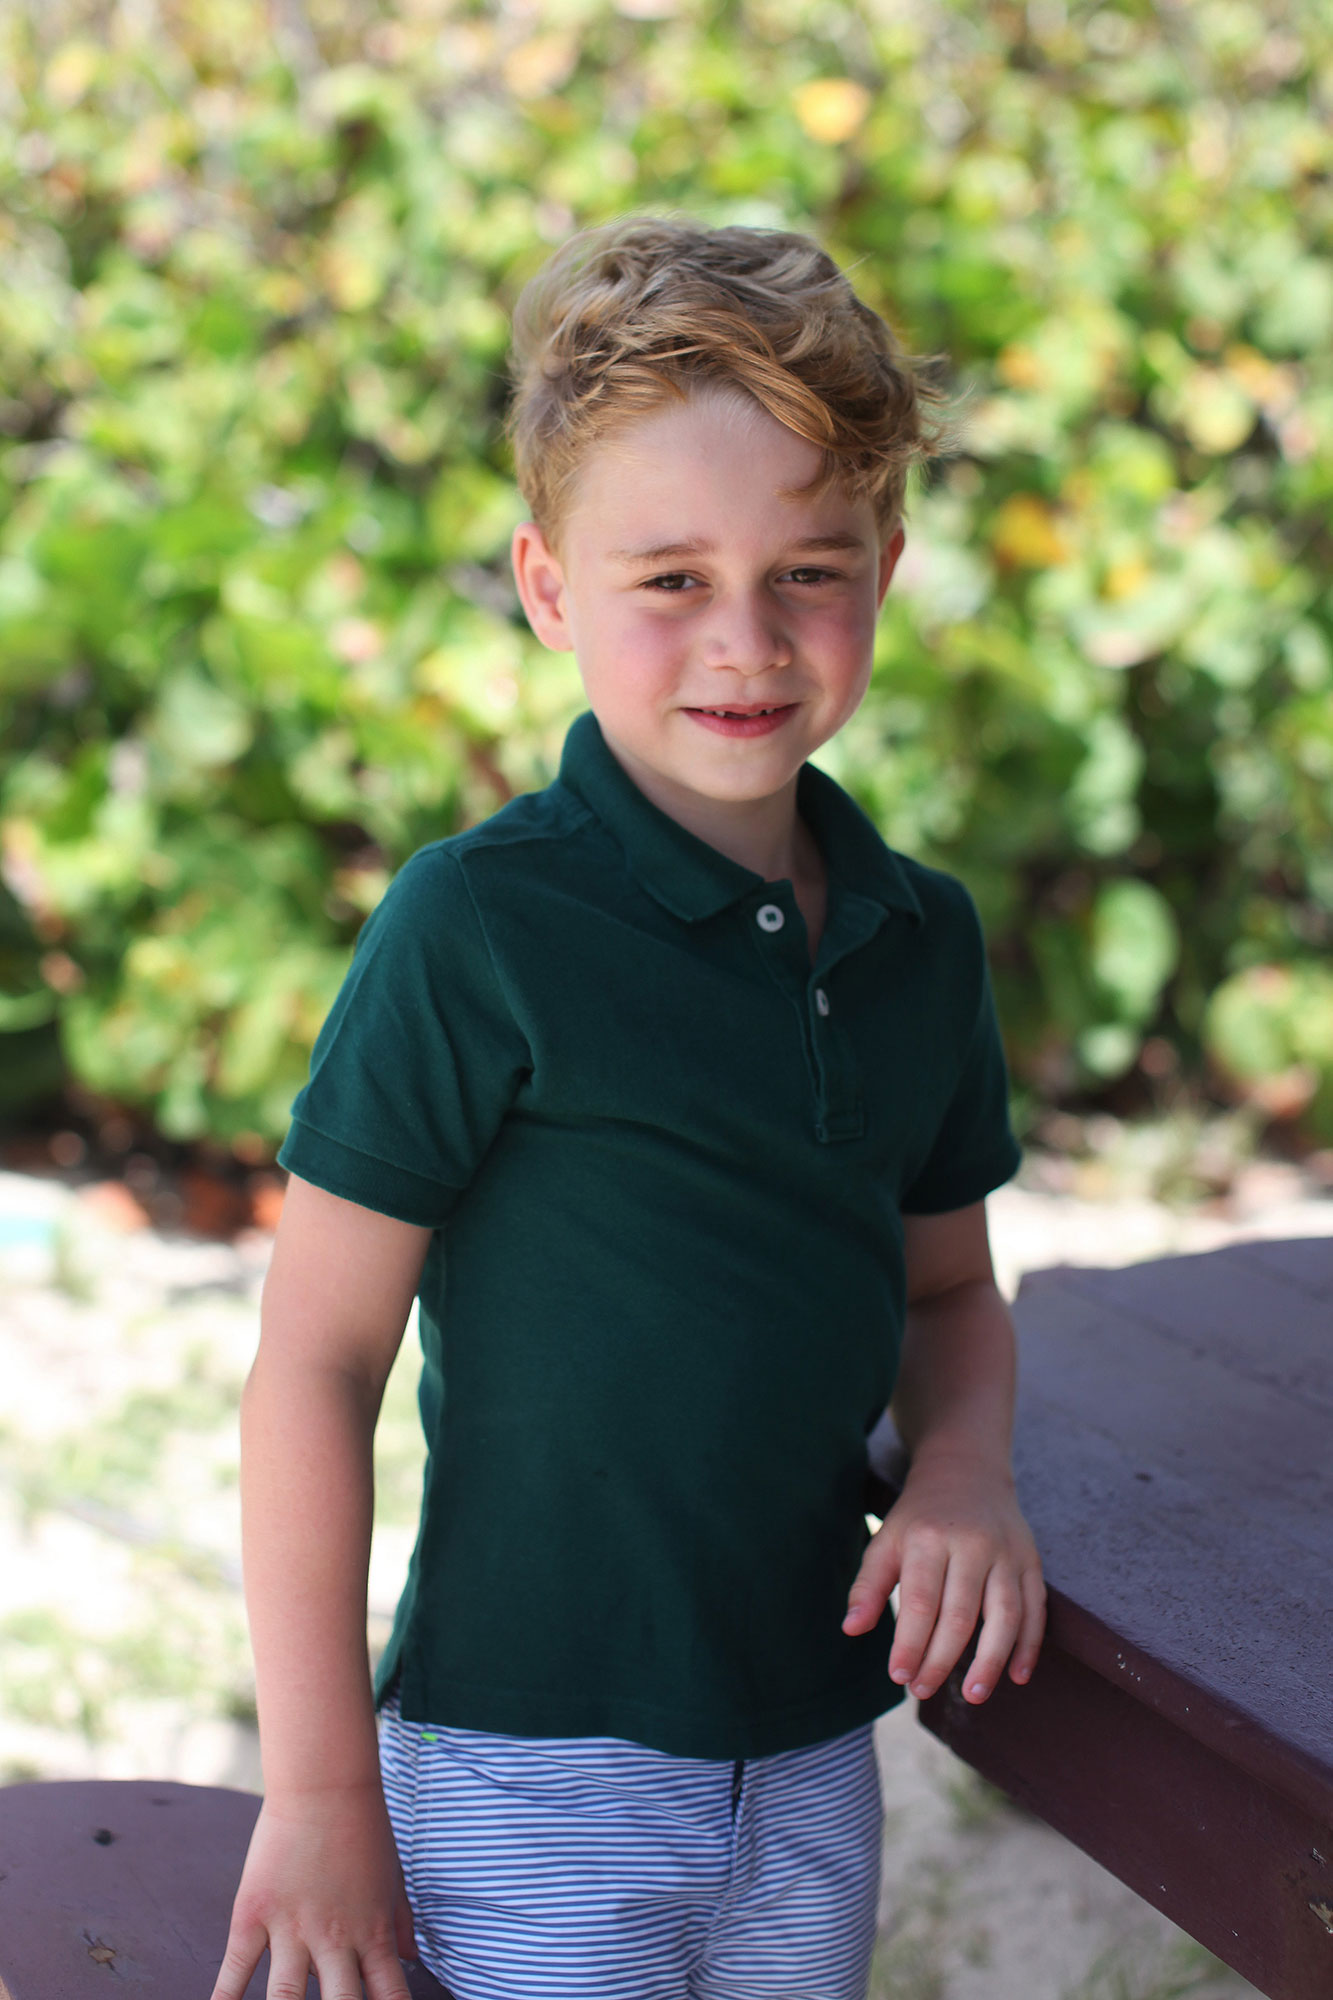 Prince George Birthday Portrait 3